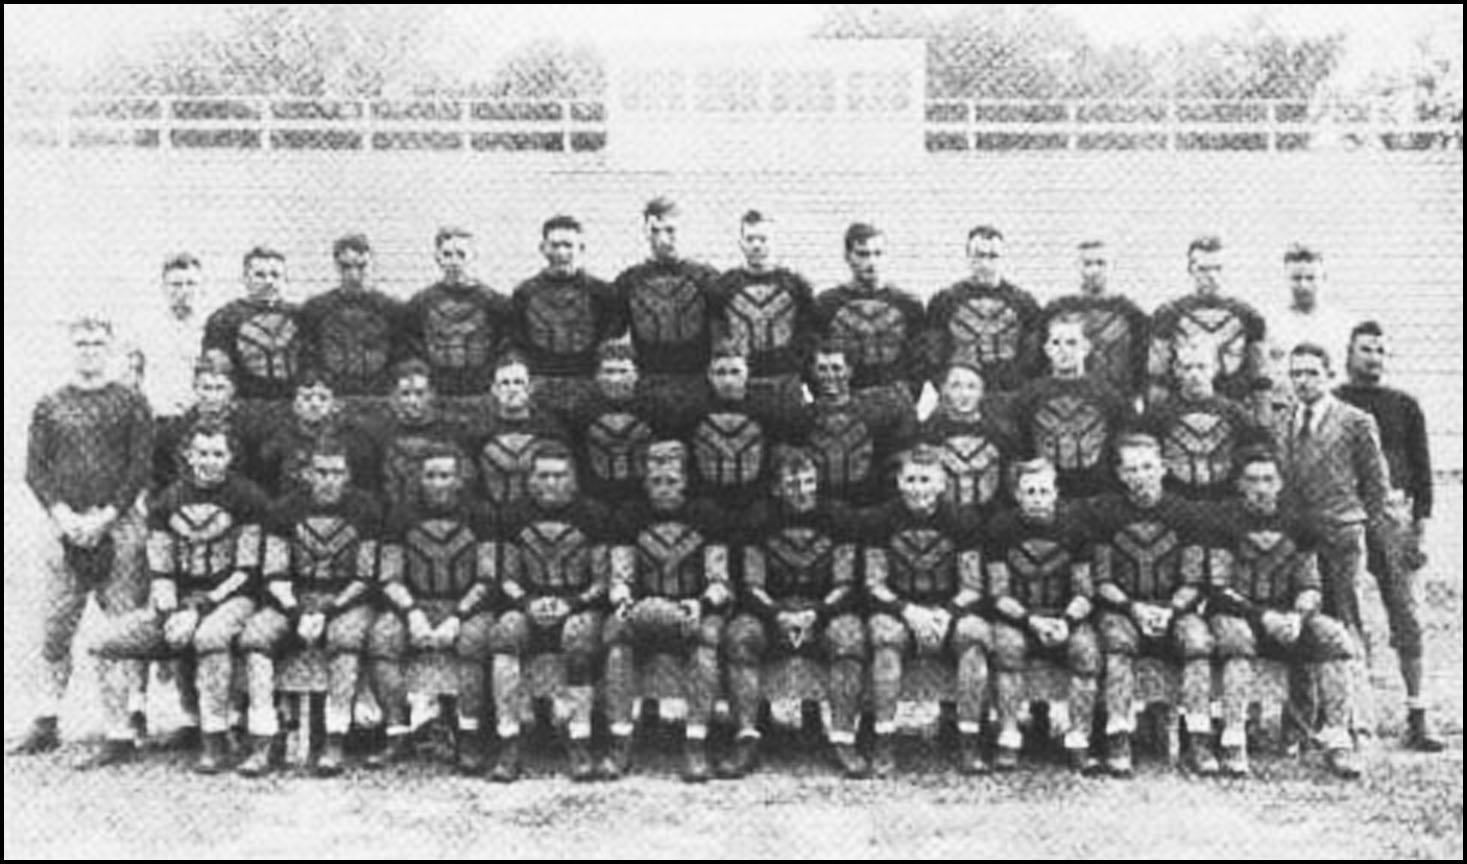 The 1930 Normal School football team image